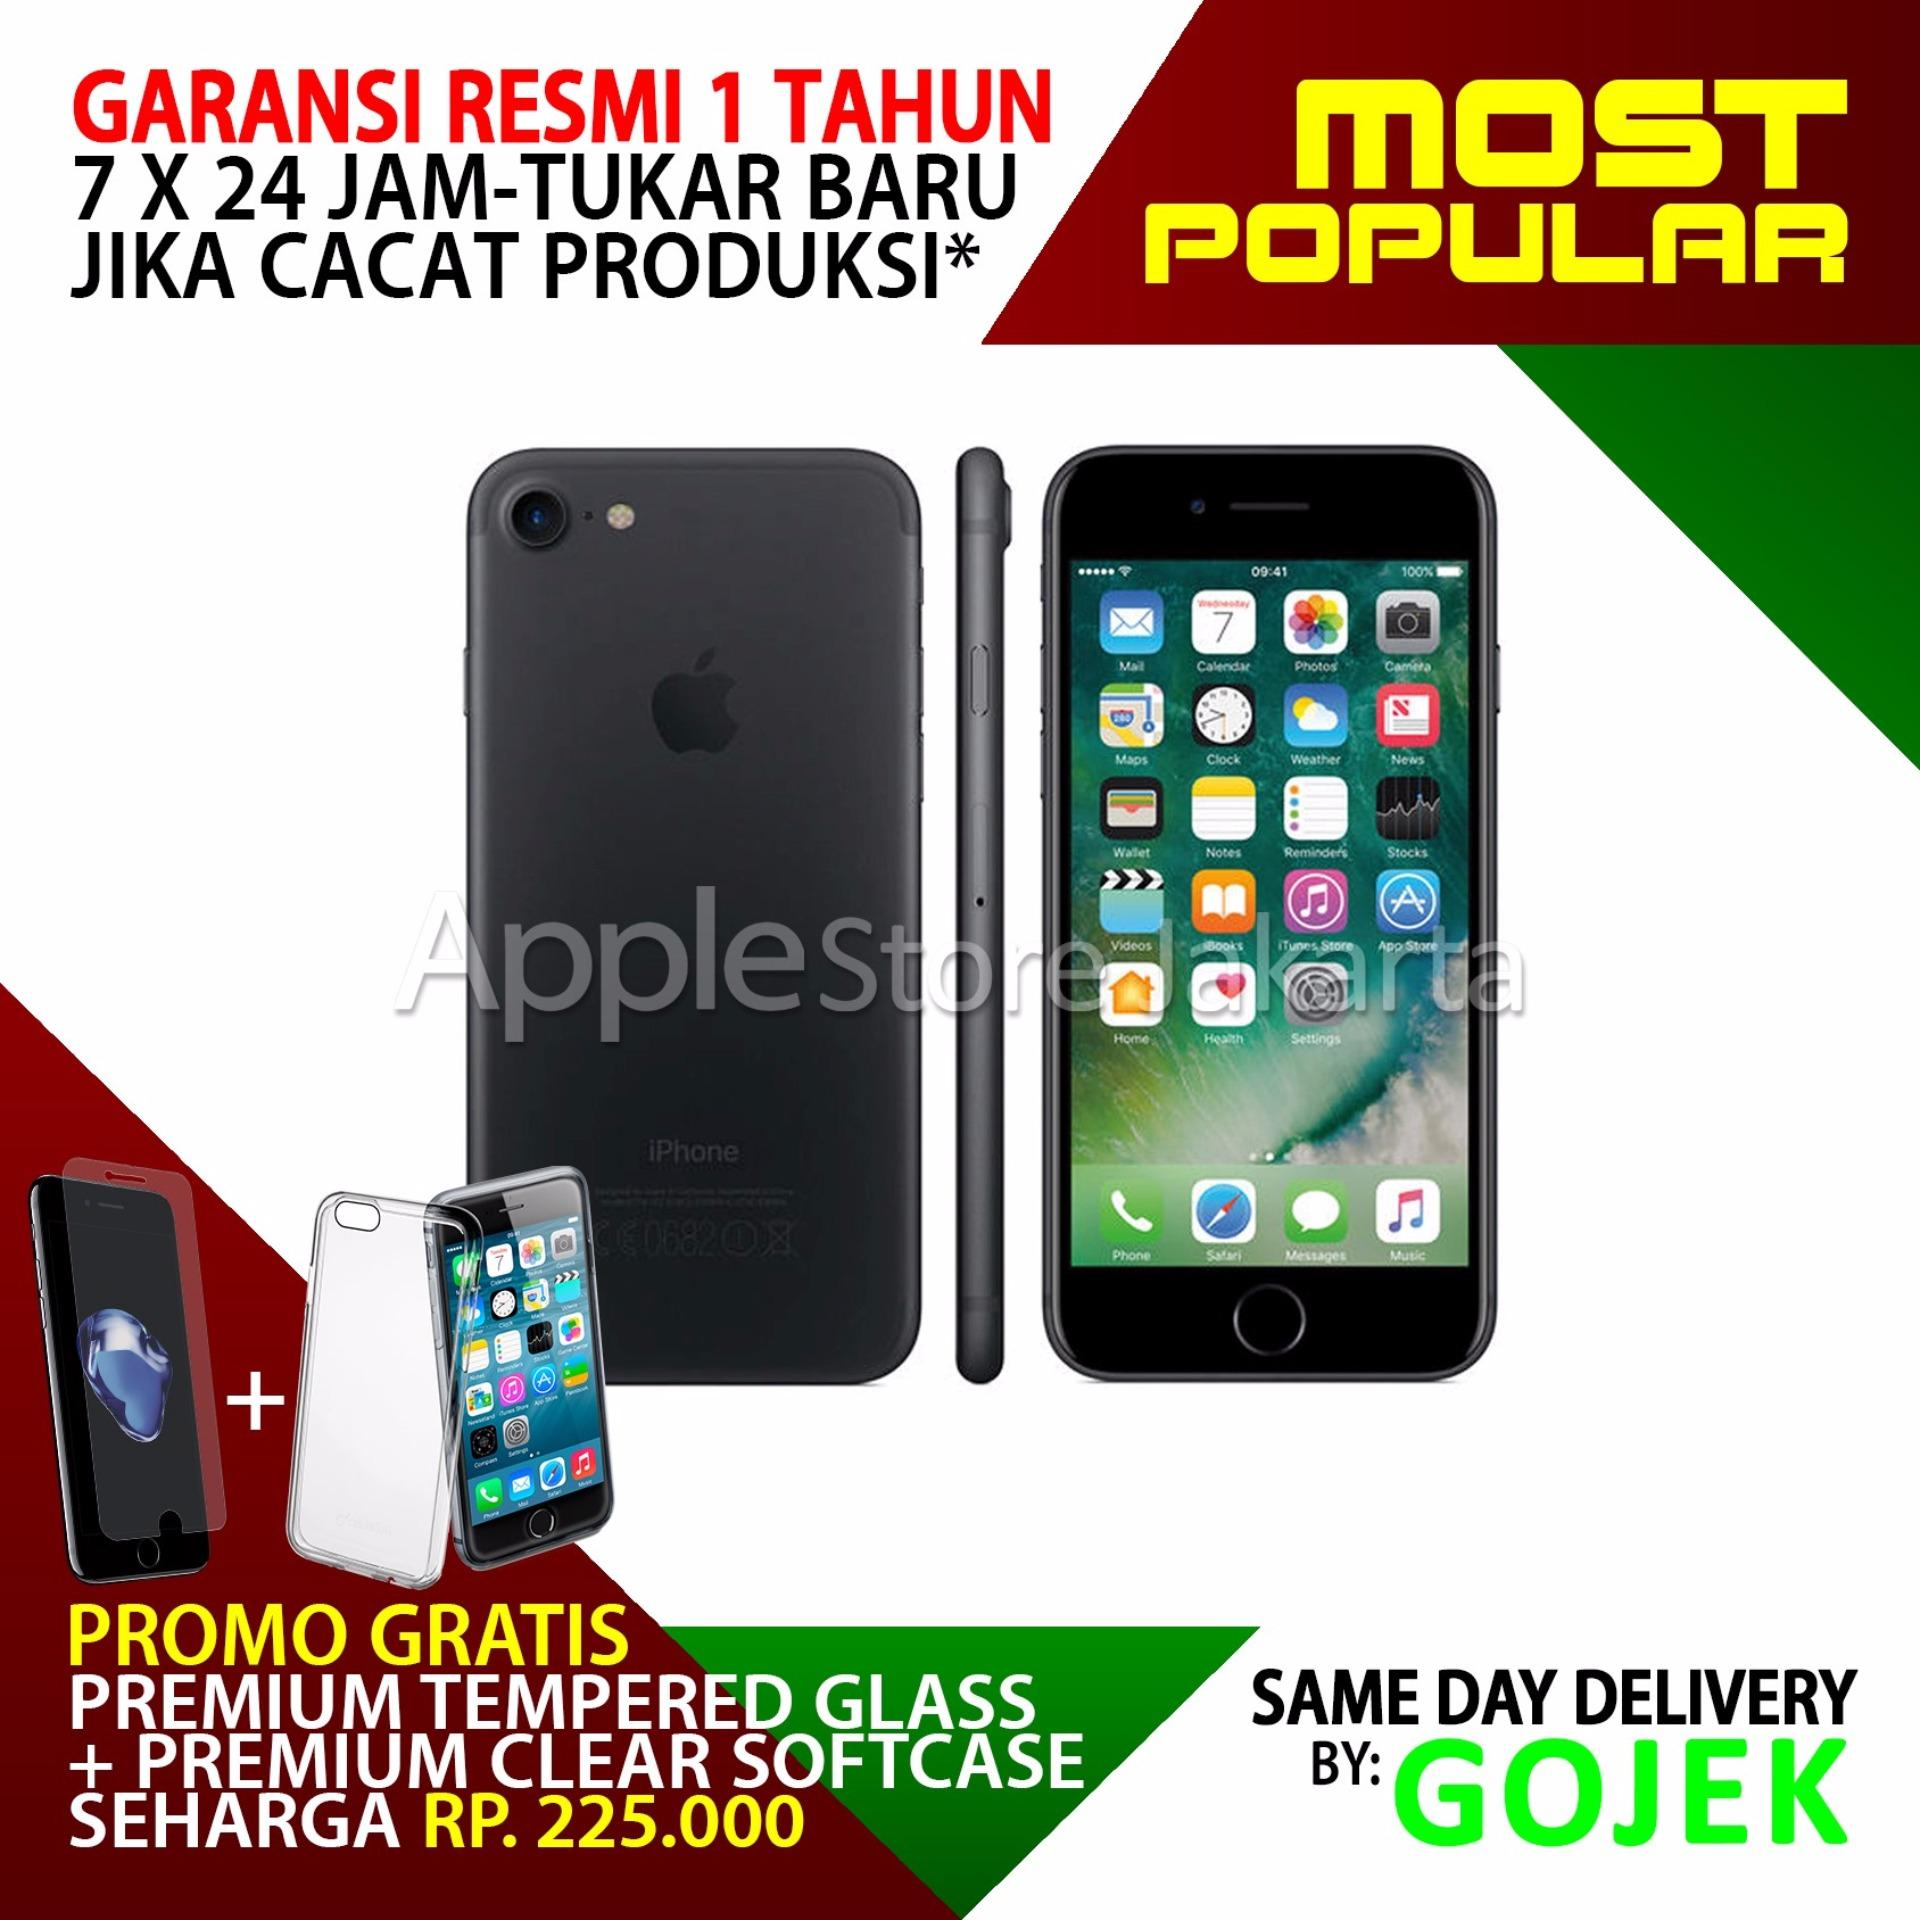 Penawaran Bagus iPhone 7 - 32GB - Black Matte Free Premium Tempered ... 1da2370594